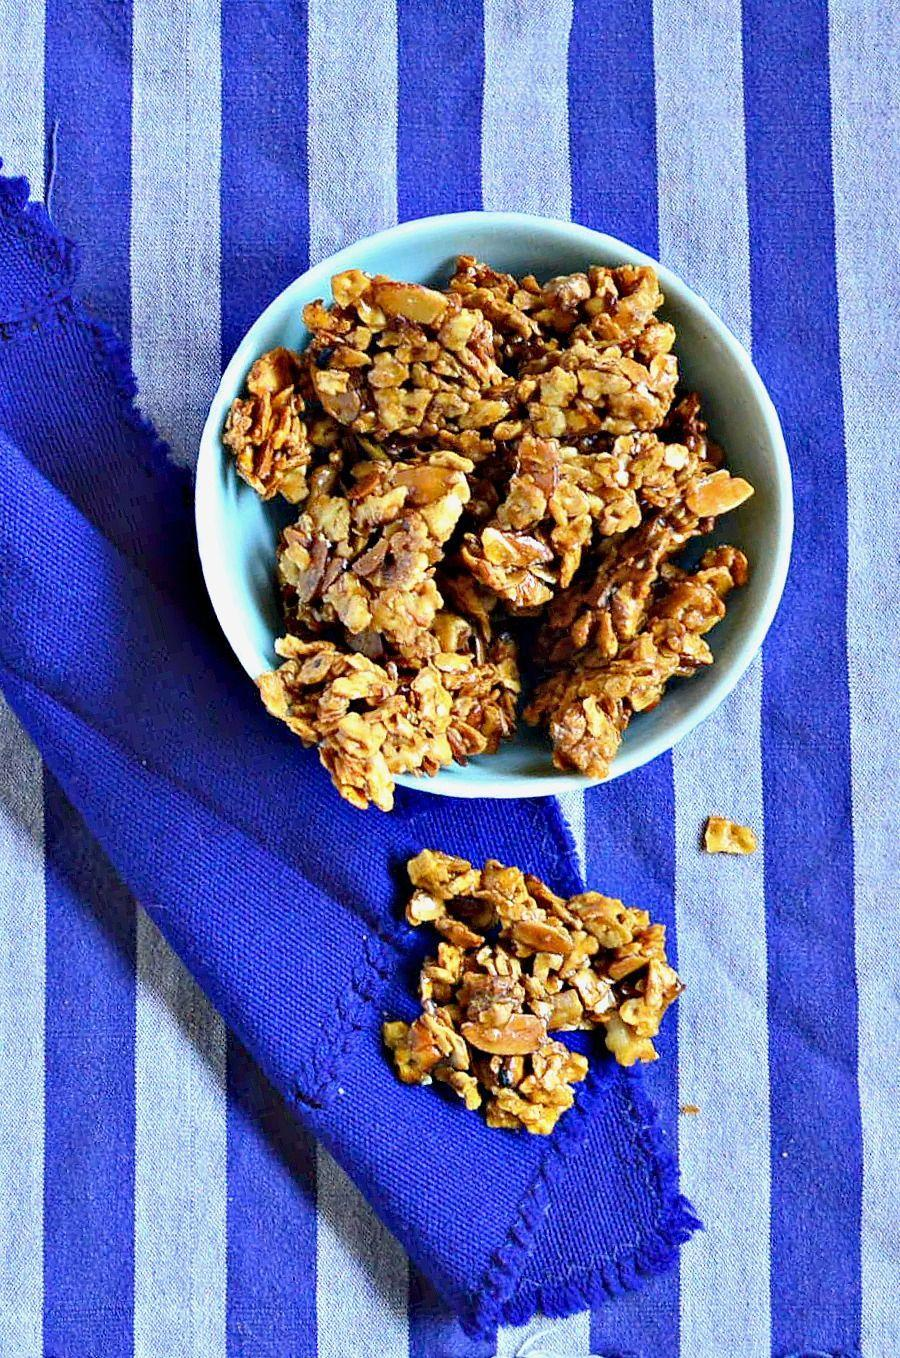 """<p>Whether you eat it for breakfast or as a late-afternoon snack, these crumbly bites with honey, sugar and salt will curb your cravings. </p><p><em><a href=""""http://www.thisishowicook.com/2016/04/honey-crunch-matzoh-brittle-and-18.html"""" rel=""""nofollow noopener"""" target=""""_blank"""" data-ylk=""""slk:Get the recipe from This is How I Cook »"""" class=""""link rapid-noclick-resp"""">Get the recipe from This is How I Cook »</a></em></p>"""